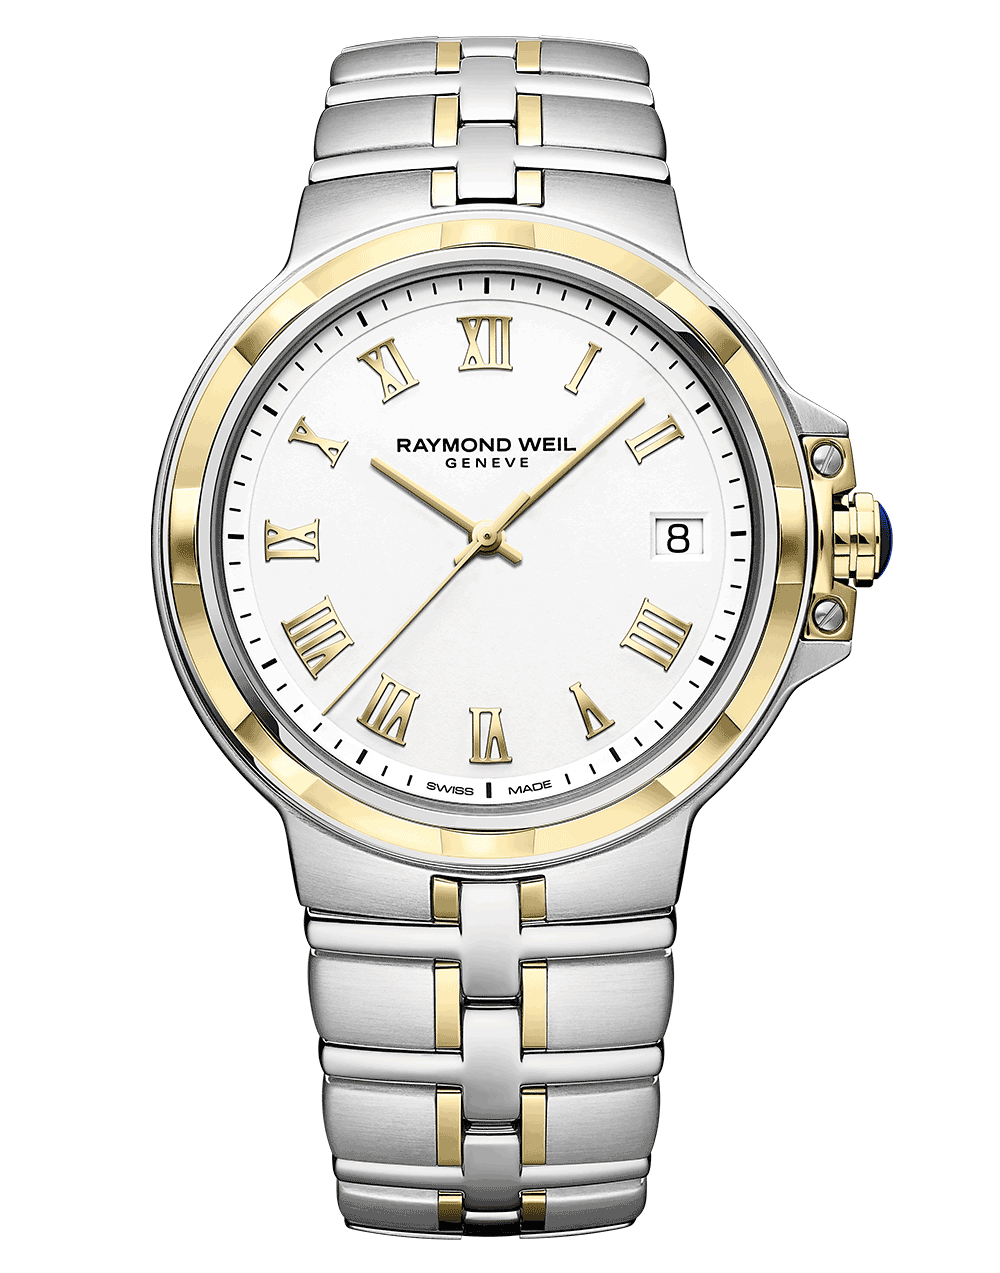 RAYMOND WEIL Geneve Men's Parsifal Luxury Two-tone Watch